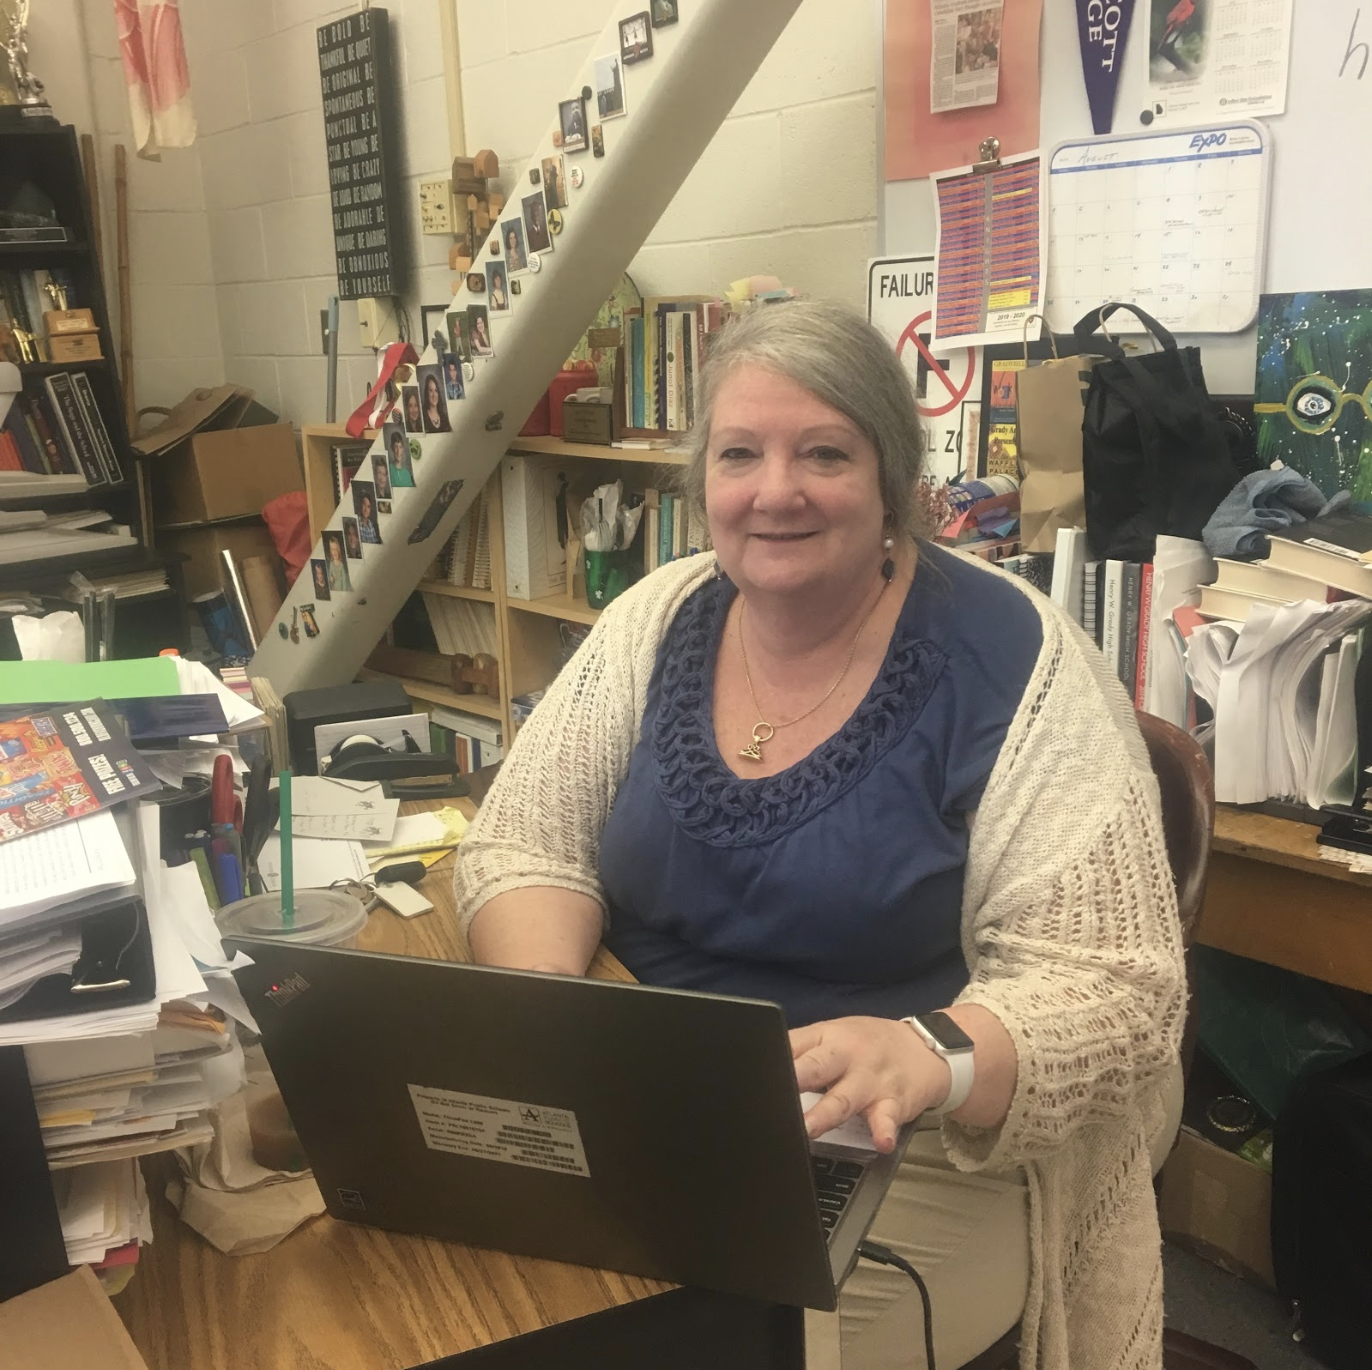 Lisa Willoughby, working during her planning period, in between teaching literature classes.